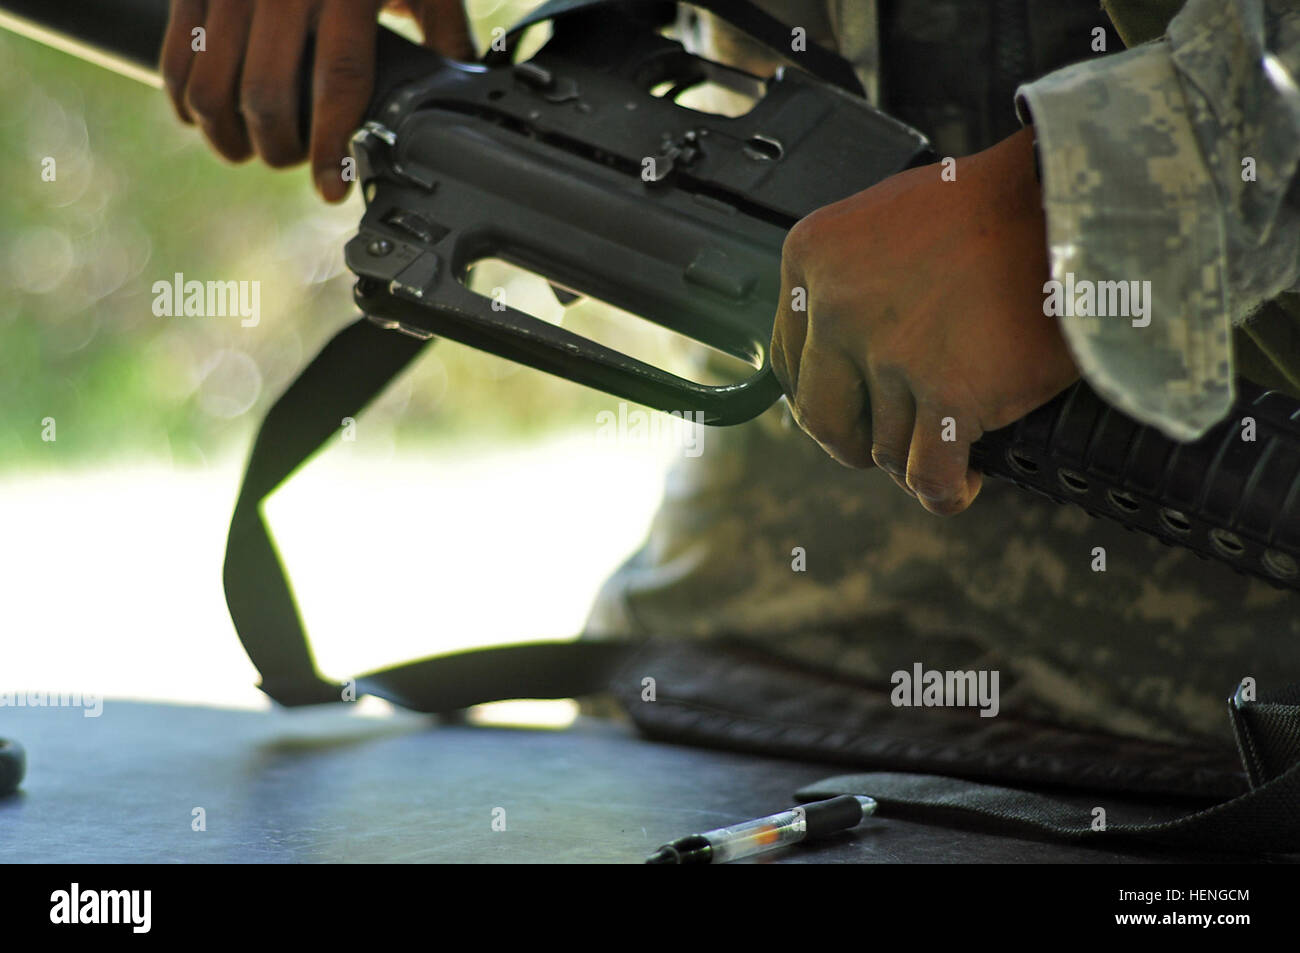 115th Brigade Support Battalion Stock Photos No Disassemble Stephanie Because To Be Disassembled Is Dead That One Of The Most Basic Tasks Any Soldier Disassembling Reassembling And Performing A Functions